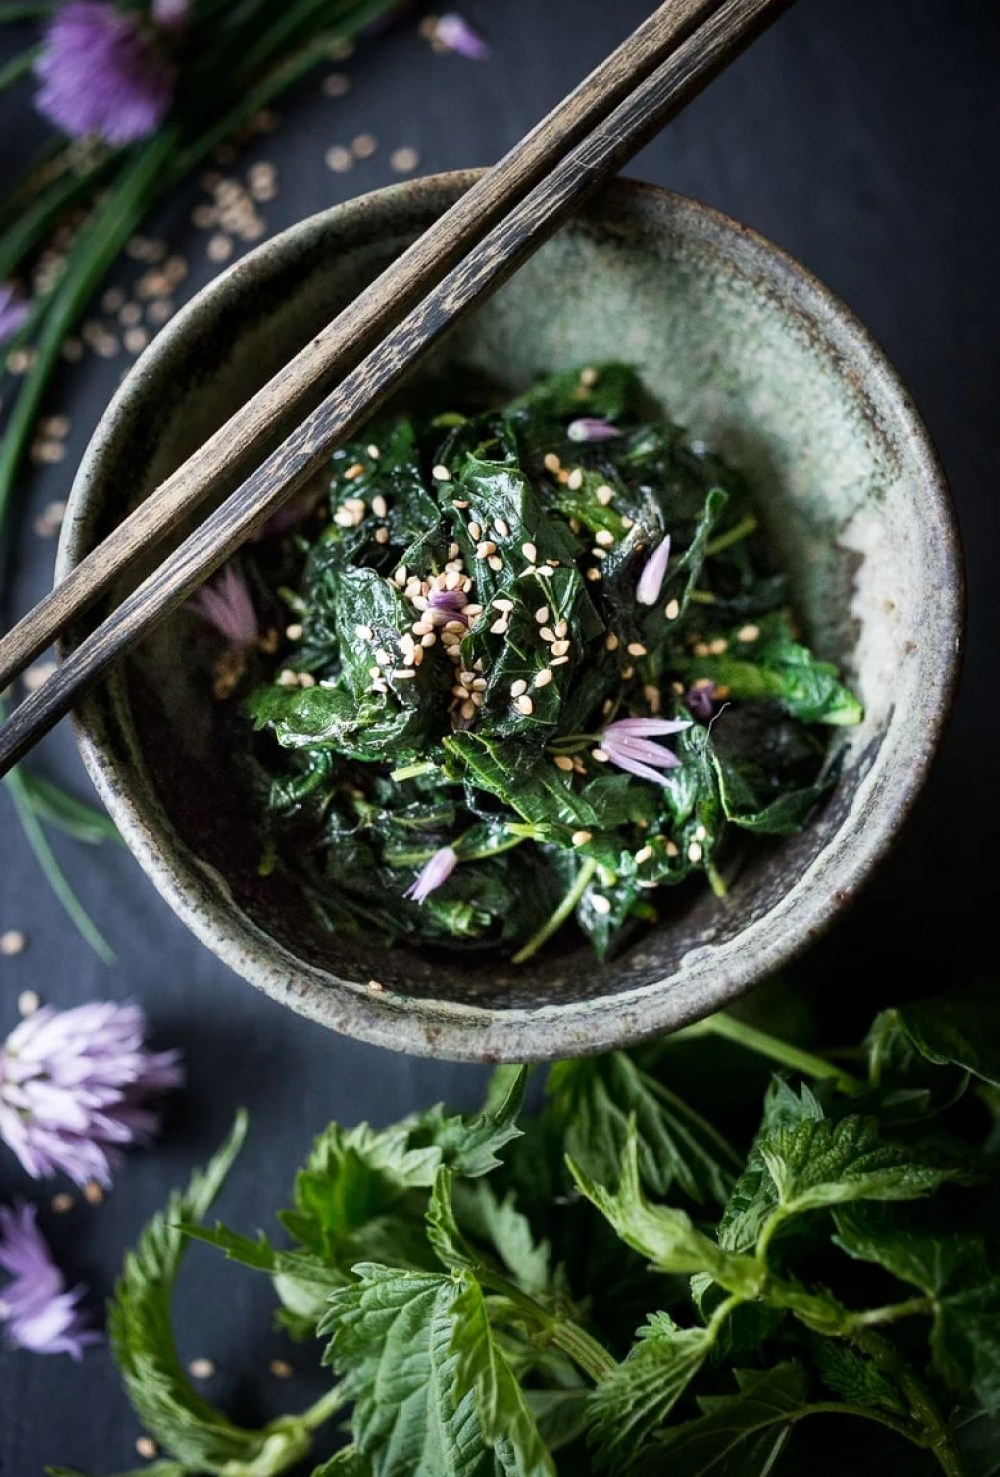 STEAMED NETTLES w/ TOASTED SESAME SEEDS & CHIVE BLOSSOMS